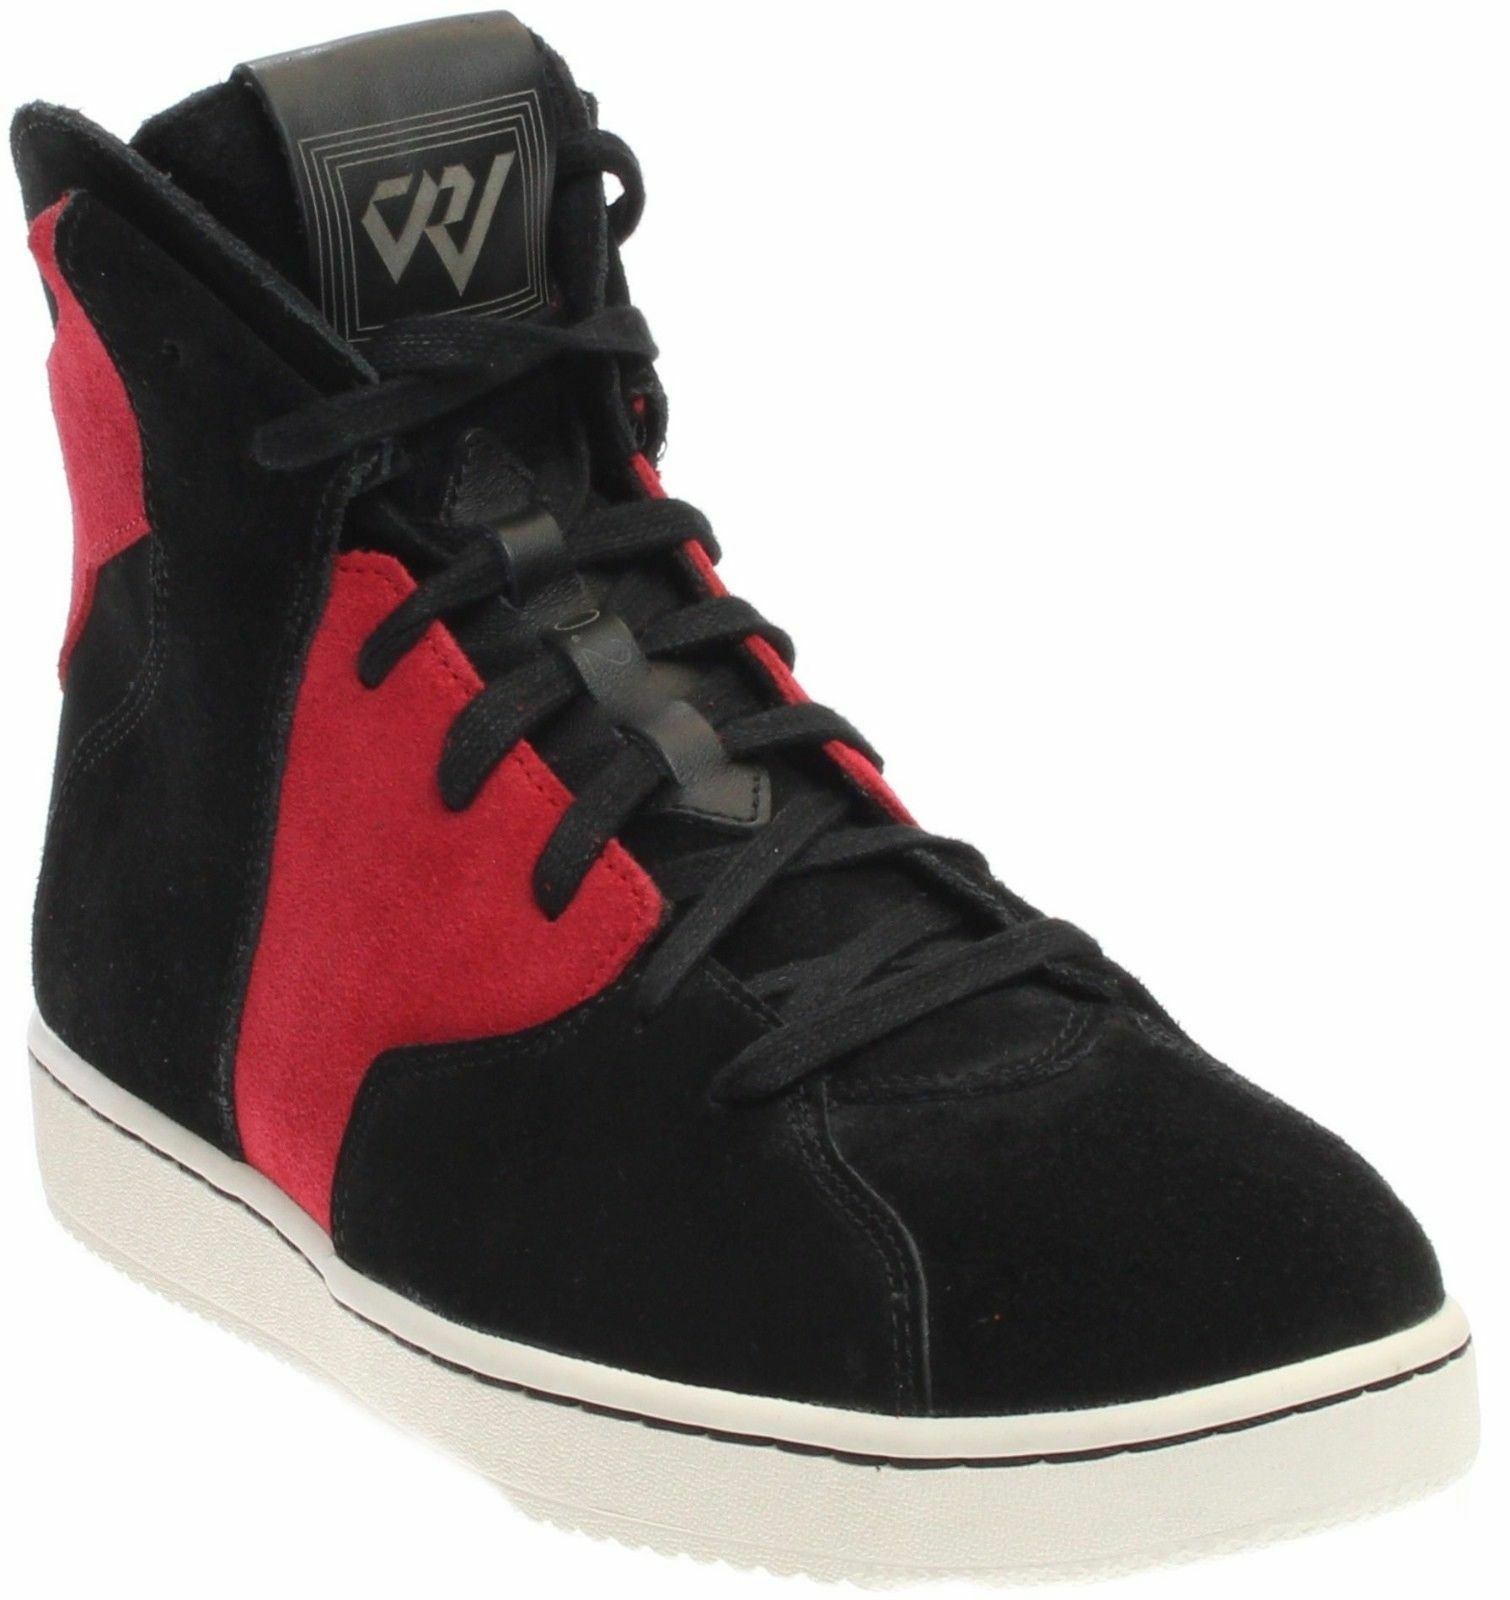 the latest e29d9 0cb94 NIKE AIR JORDAN 854563-001 WESTBROOK 0.2 WHY NOT NOT NOT Men s shoes Black  Red